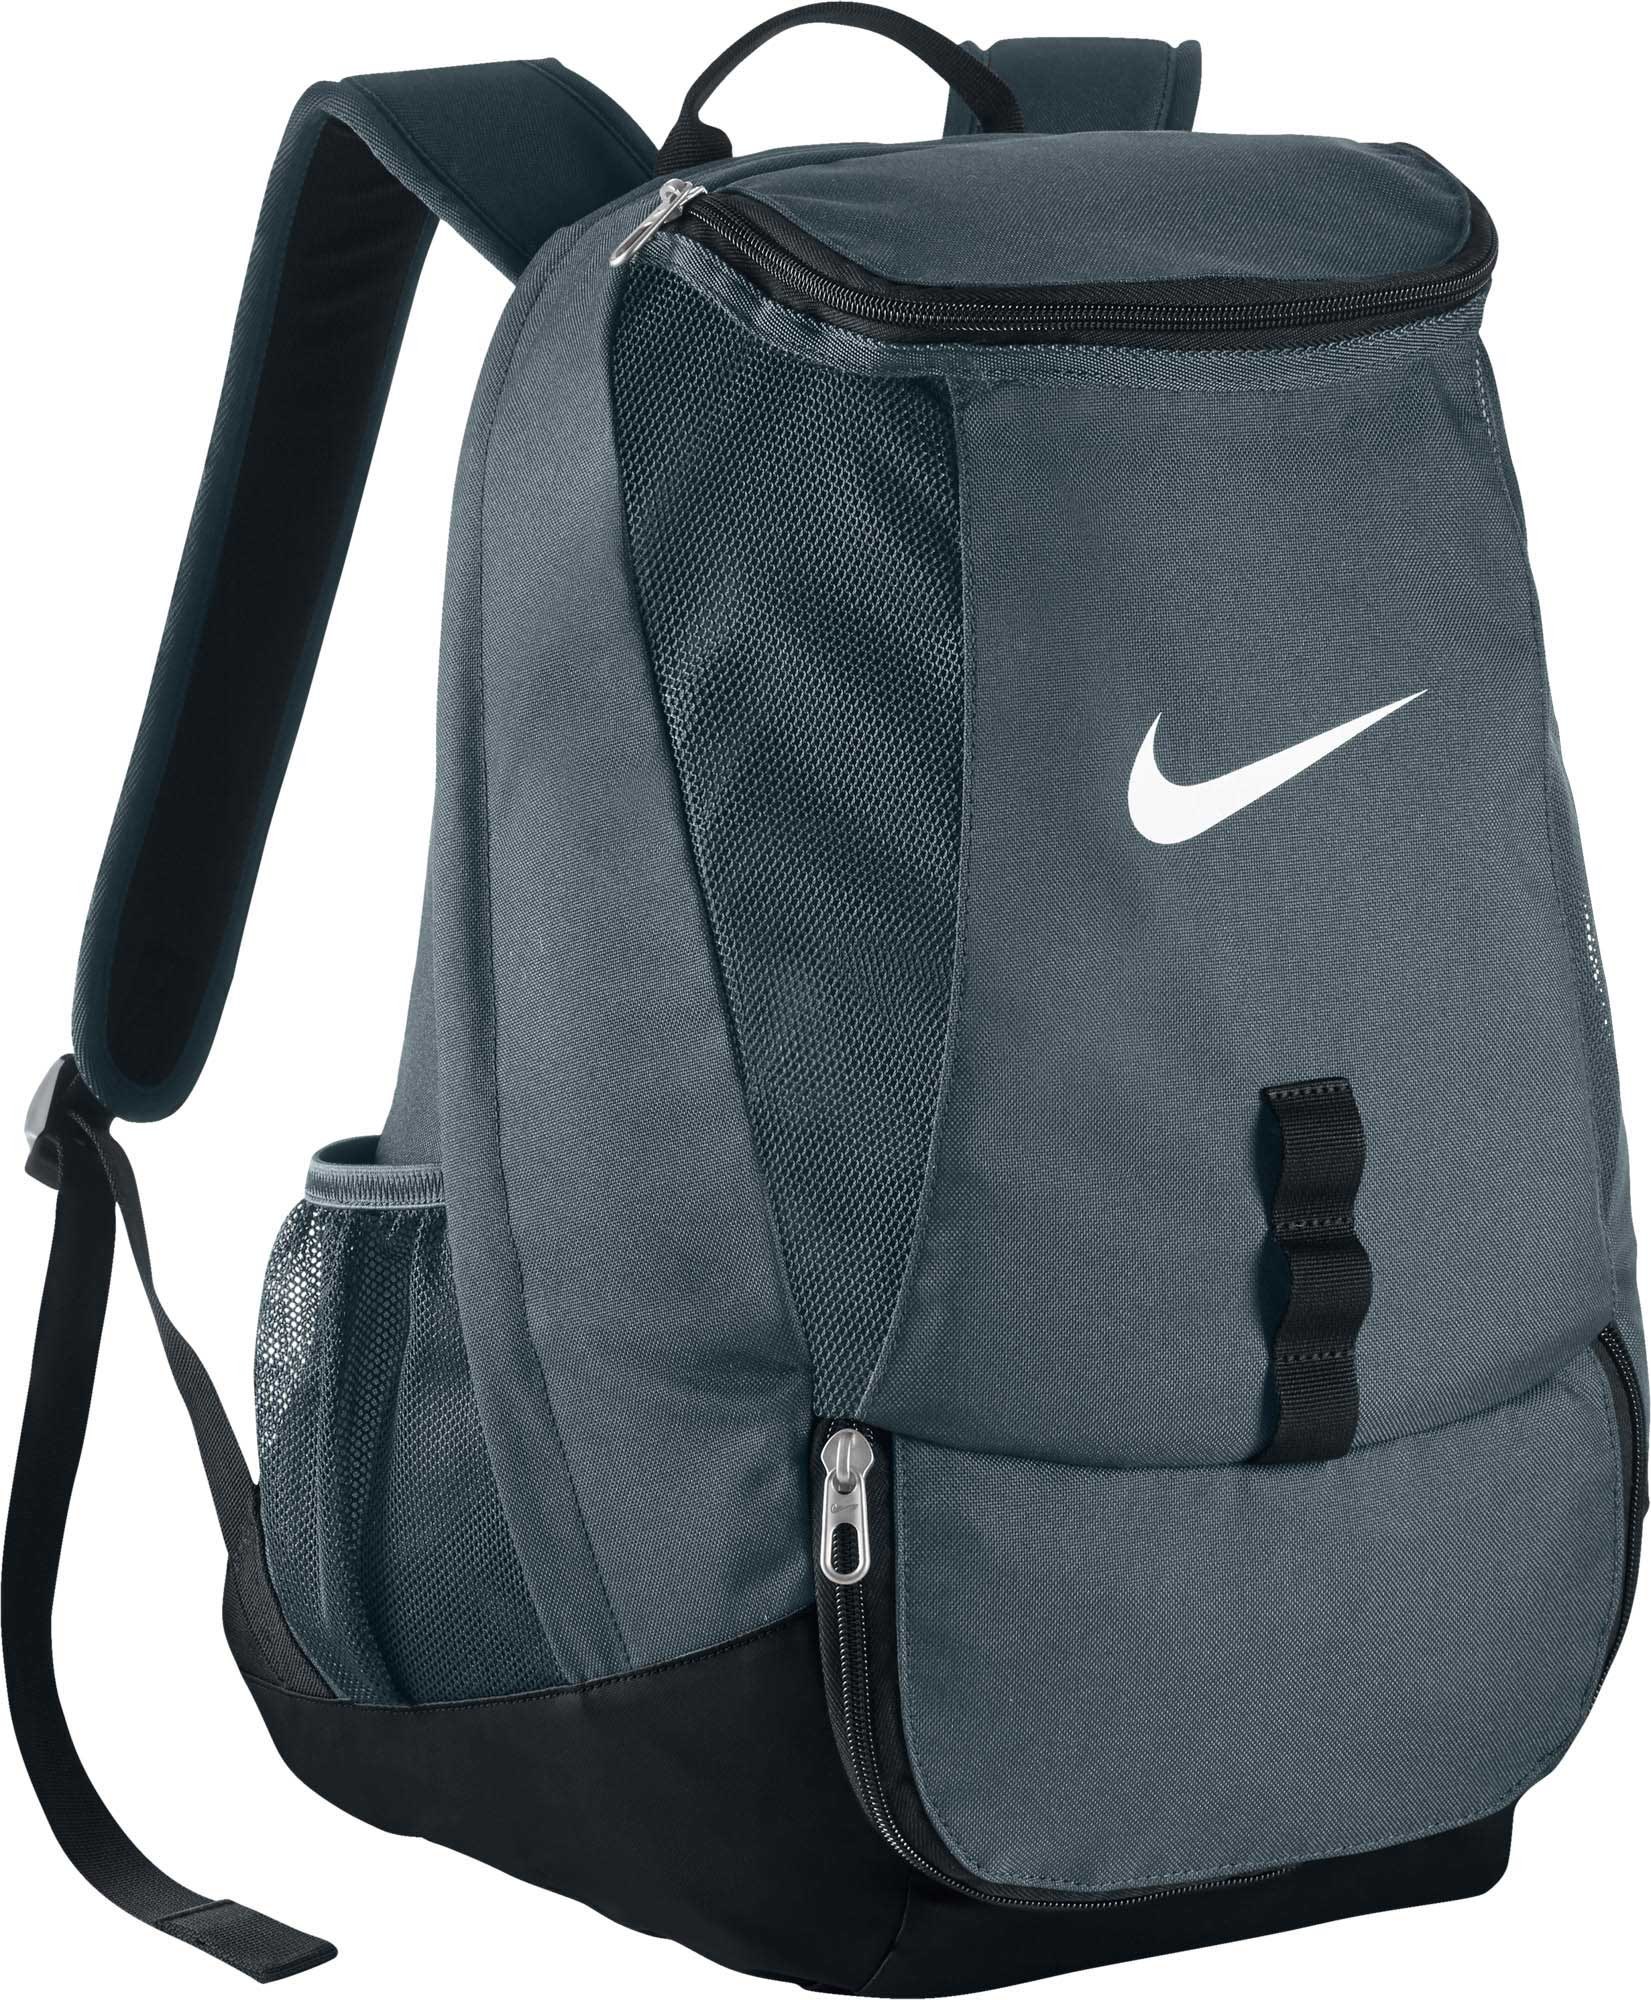 Home By Brand Nike Soccer Bags